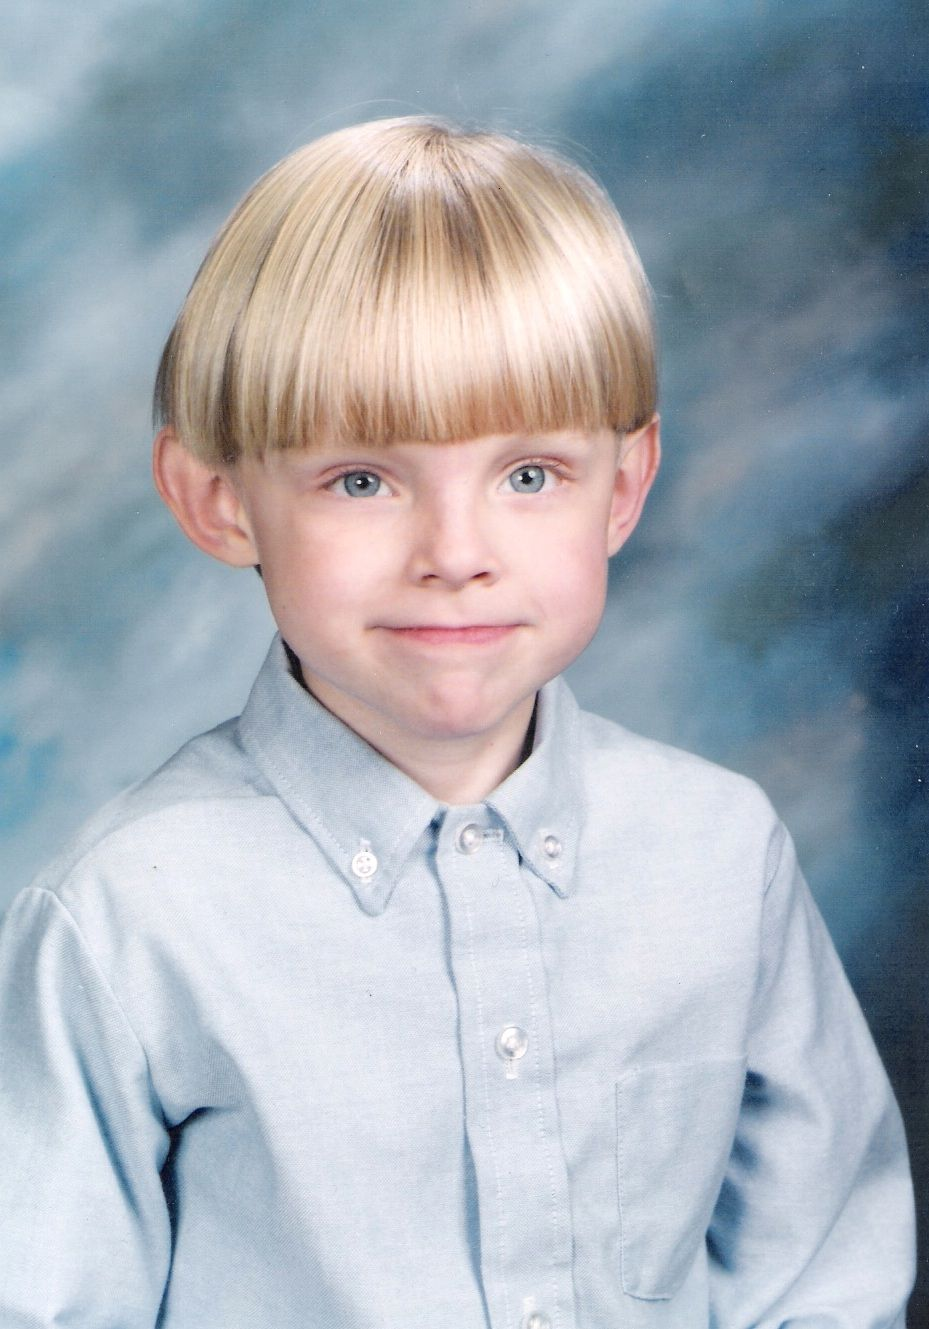 Bowl Cut Children S Hairstyles Pinterest Bowl Cut